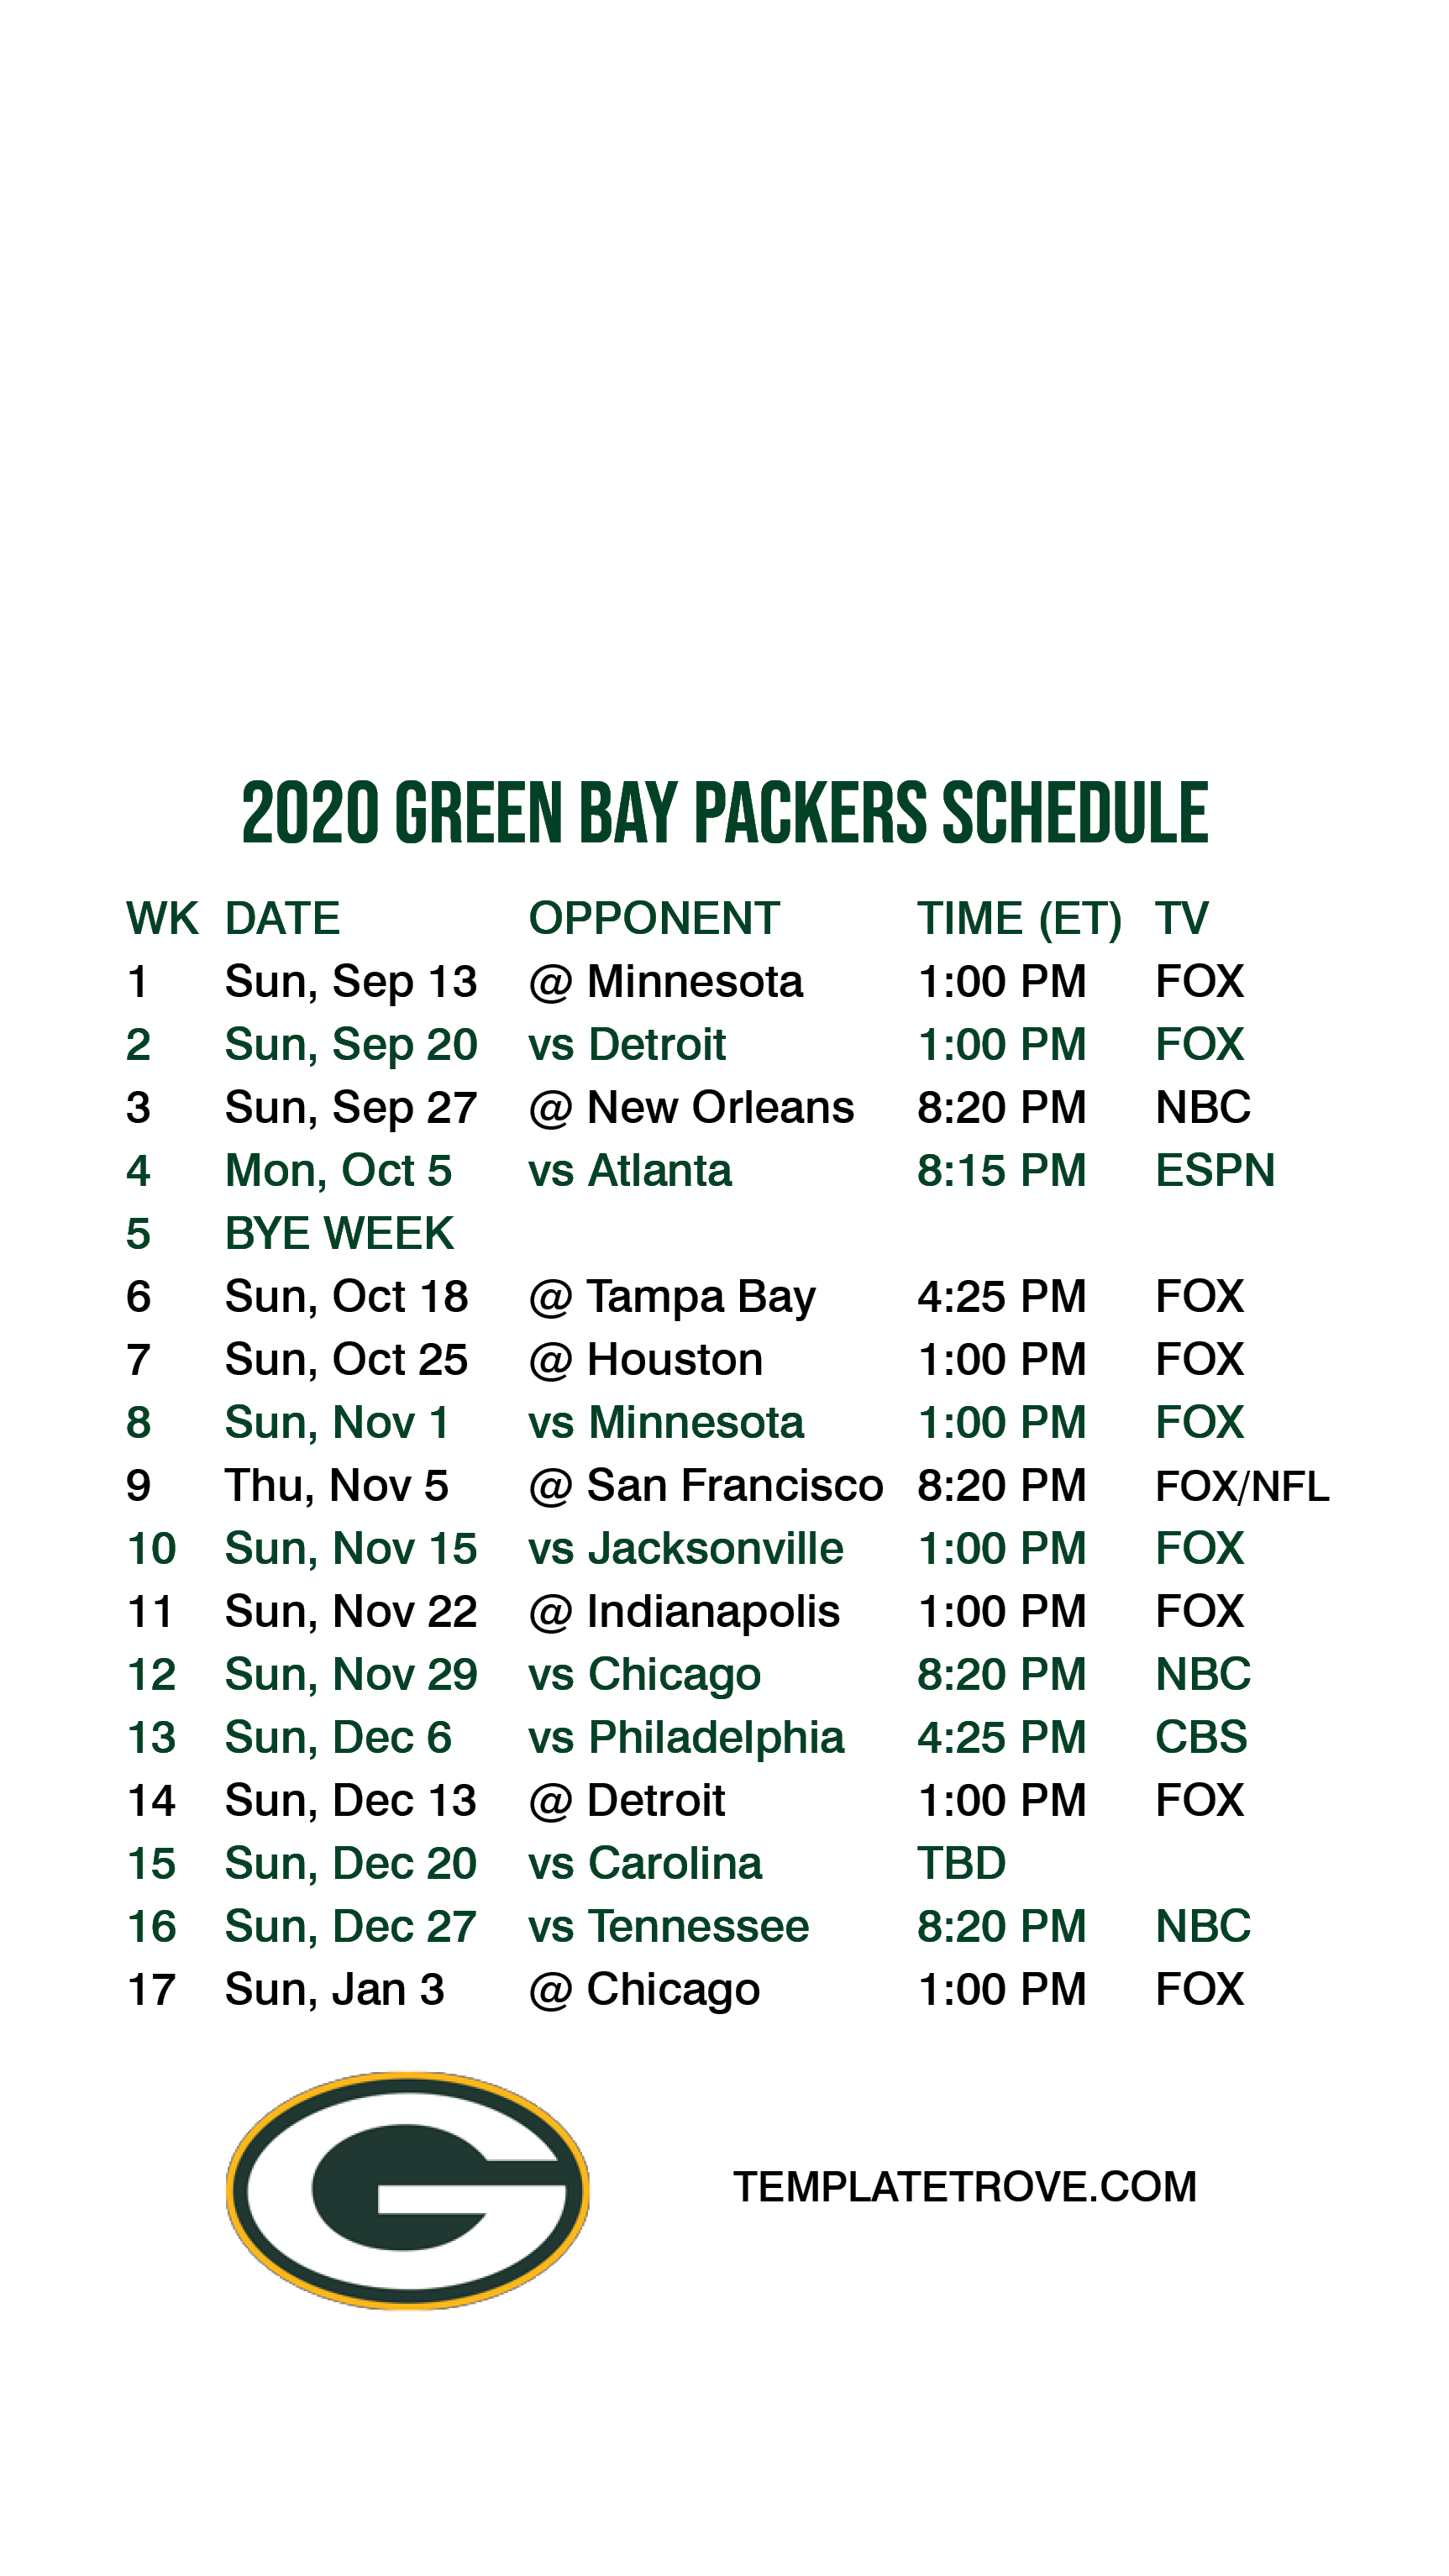 2020 2021 Green Bay Packers Lock Screen Schedule For Iphone 6 7 8 Plus